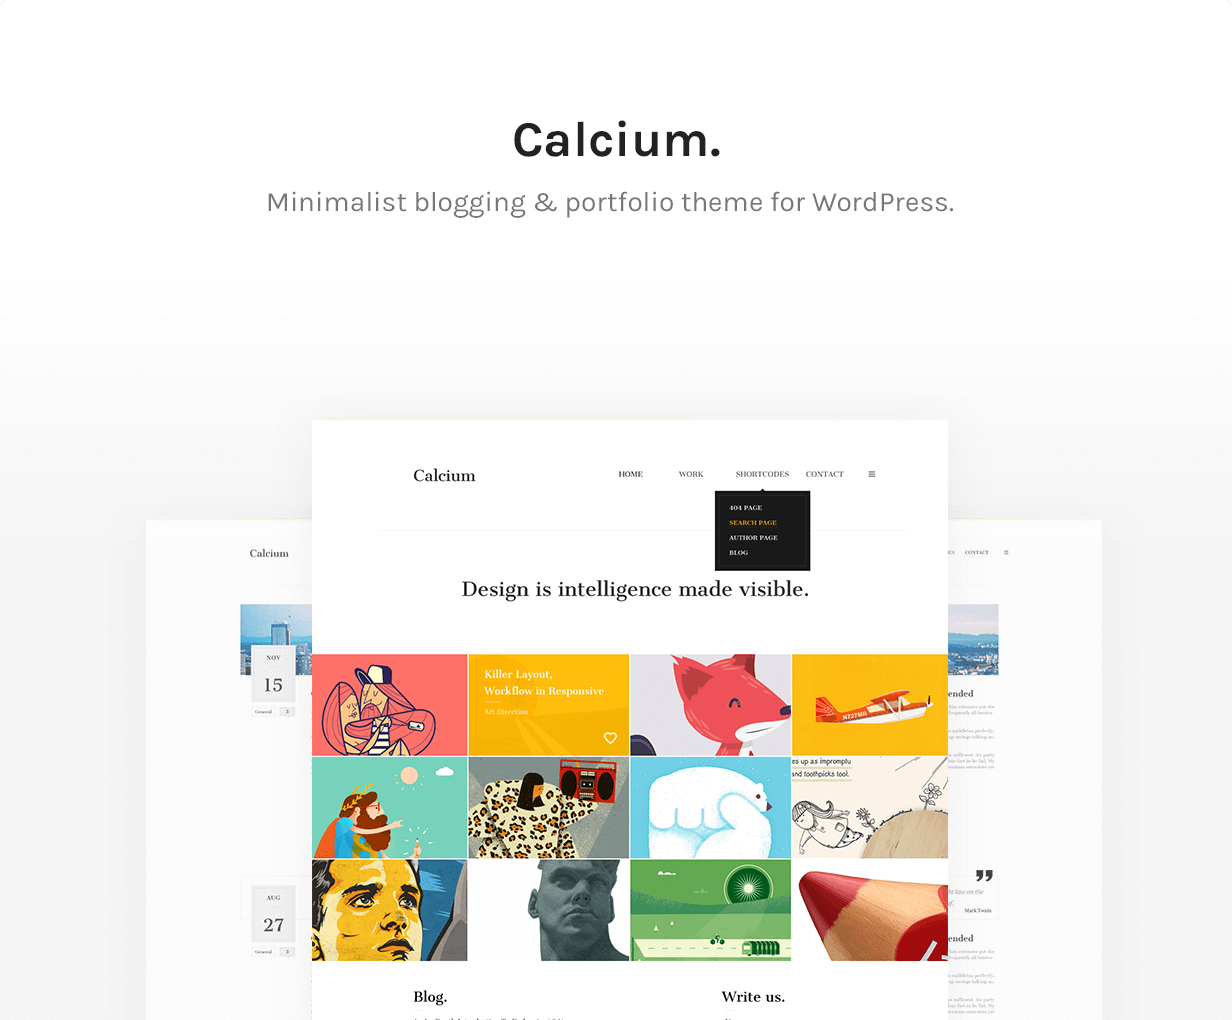 Calcium - Minimalist Portfolio & Blogging Theme - 7